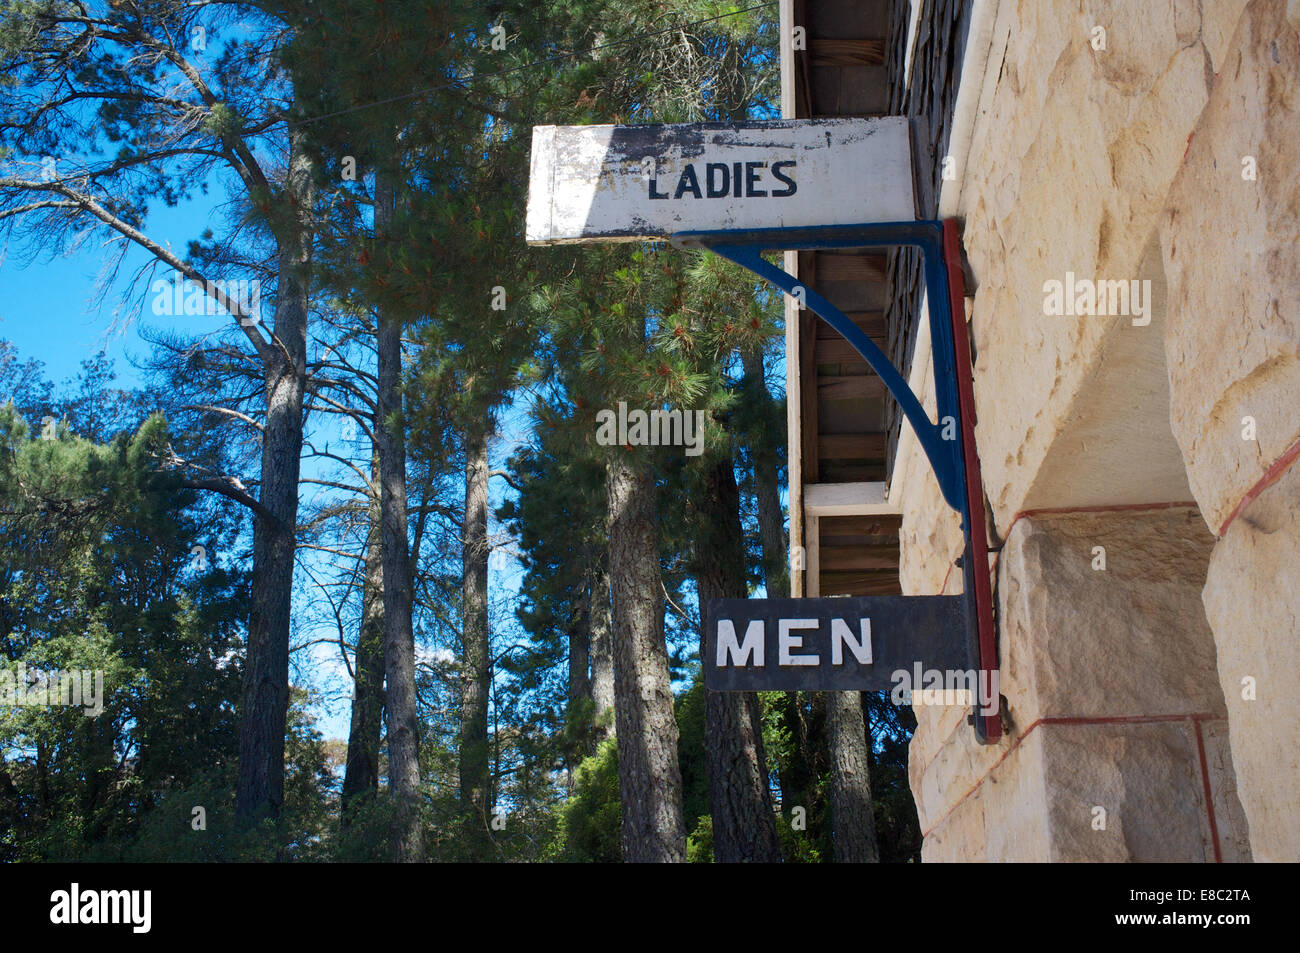 Ladies and Men: railway memorabilia preserved in the gardens of the Toy and Train Museum in Leura, New South Wales - Stock Image